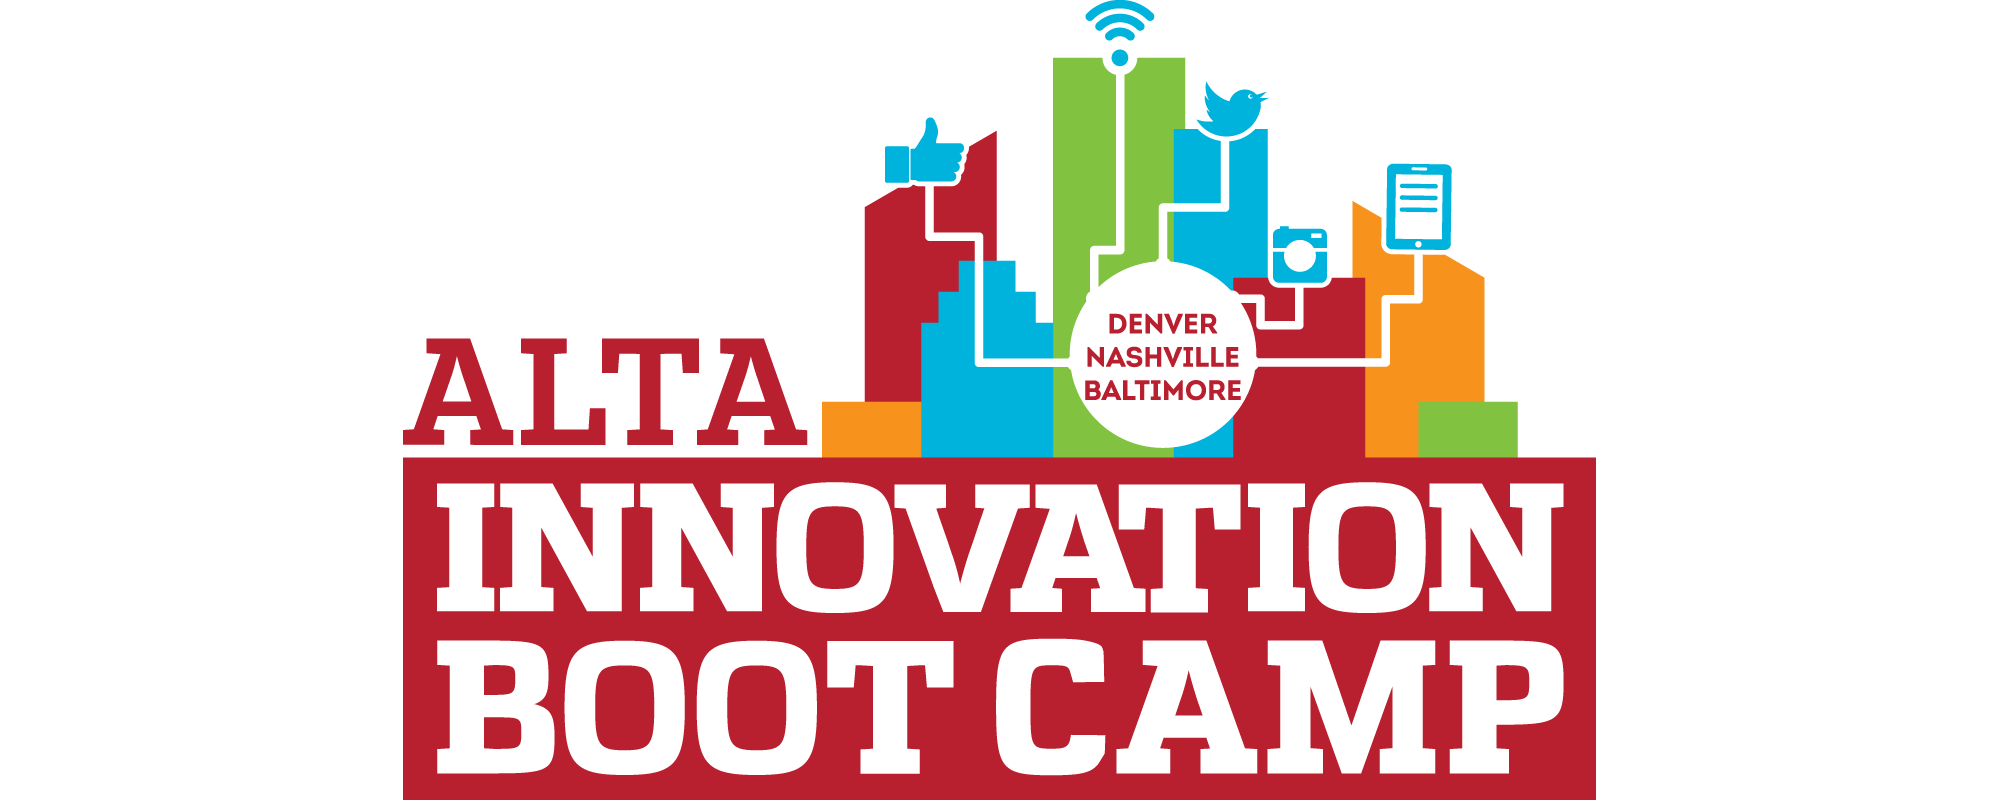 ALTA Innovation Bootcamp